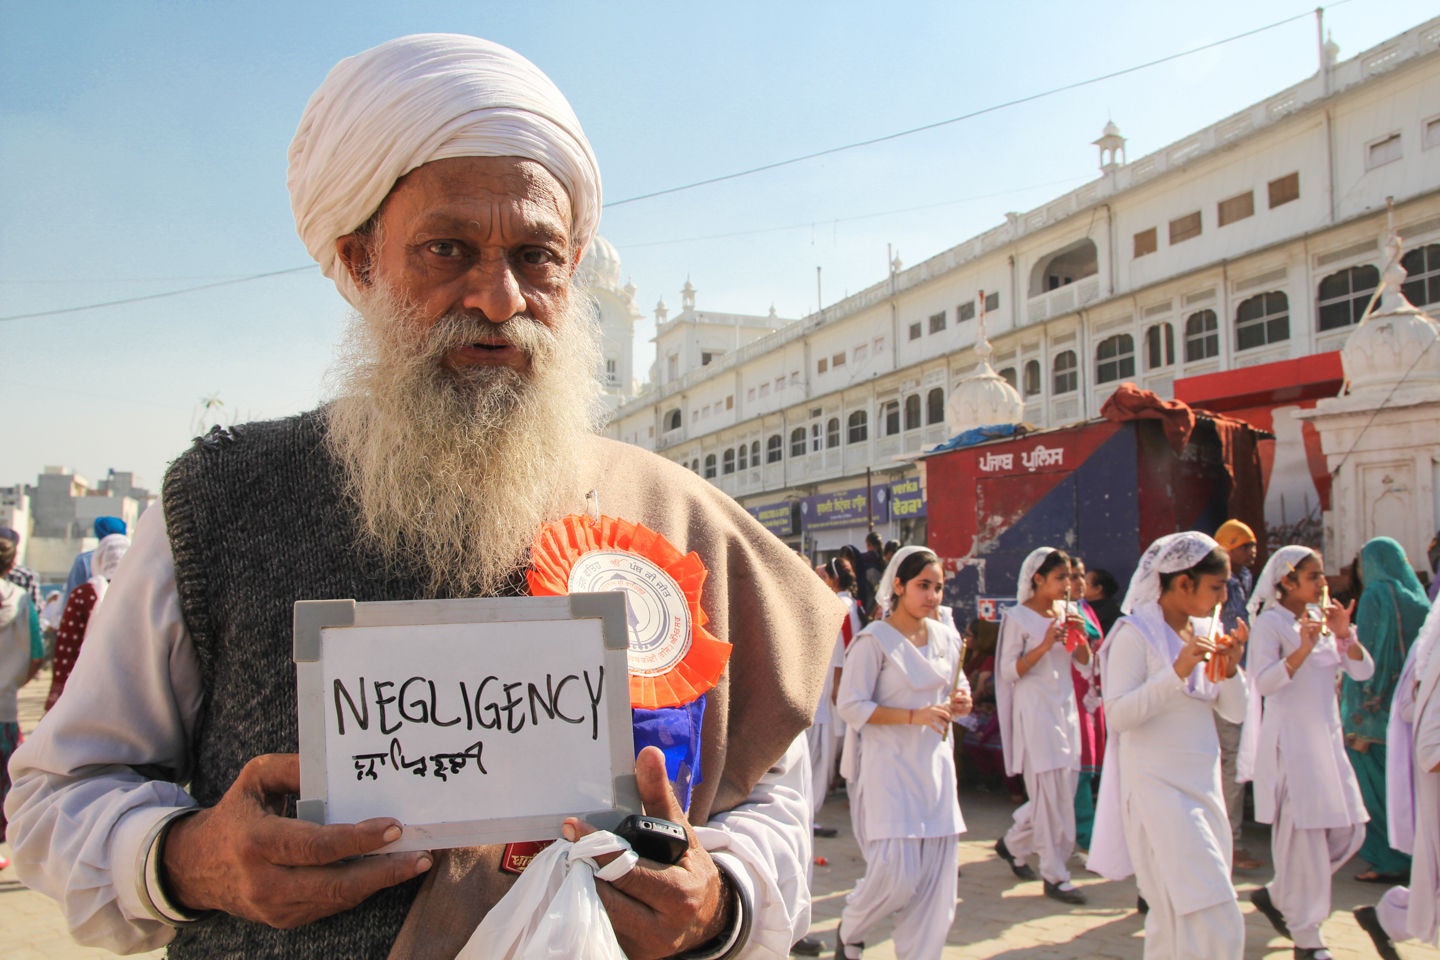 R.S. Pars Singh, a math teacher in Punjab, avoids tea as much as possible because it 'brings negligency of the mind!' He is pictured here visiting the Golden Temple, the Sikh religion's holiest site, for Guru Nanak Jayanti, the birthday of the founder of Sikhism.